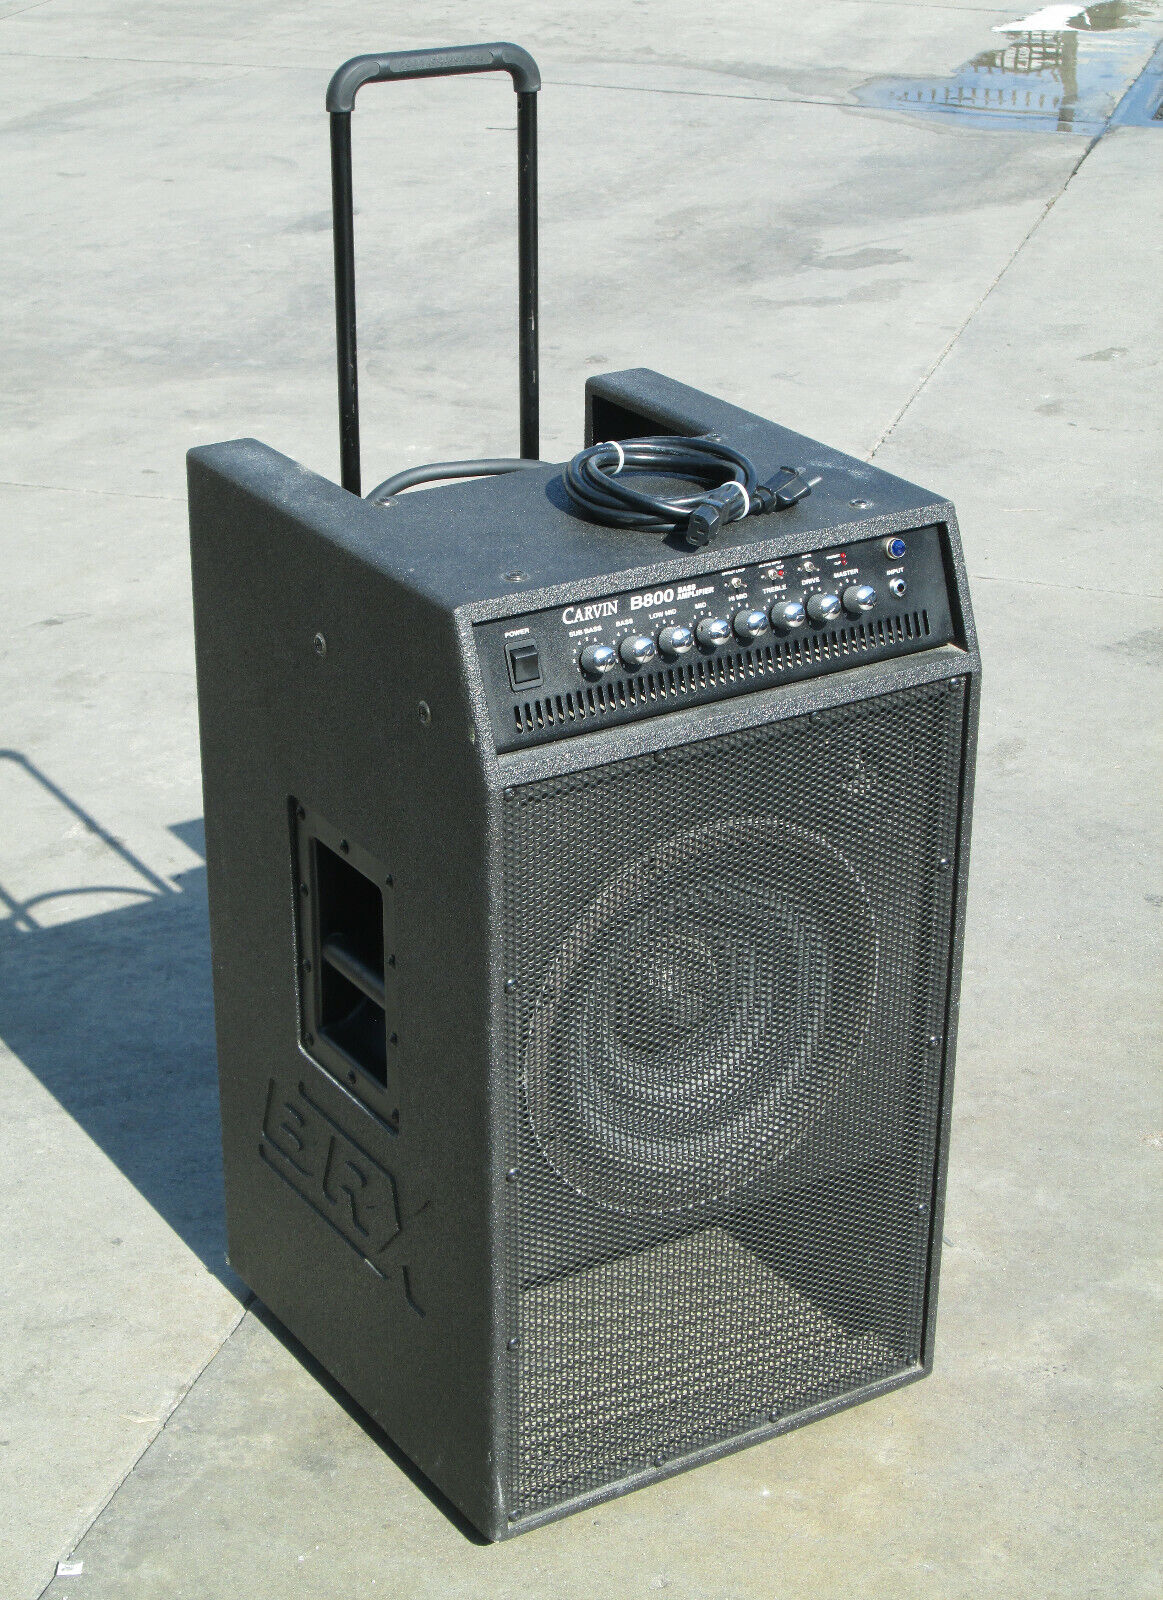 Carvin B800 Bass Amplifier Speaker Combo BRX 212 . Buy it now for 399.99